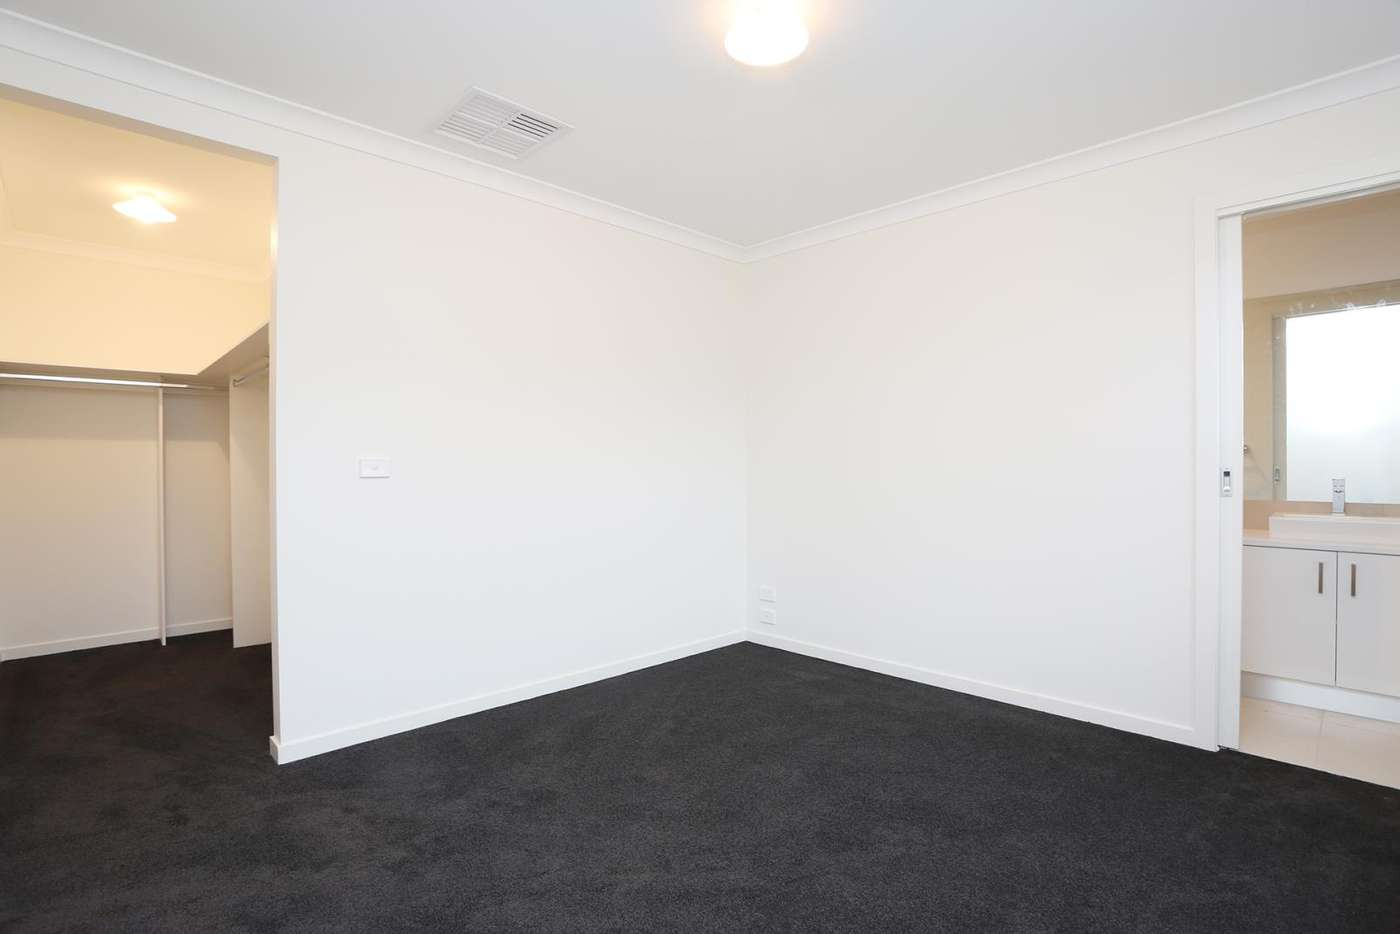 Fifth view of Homely house listing, 23 Thaine Way, Doreen VIC 3754